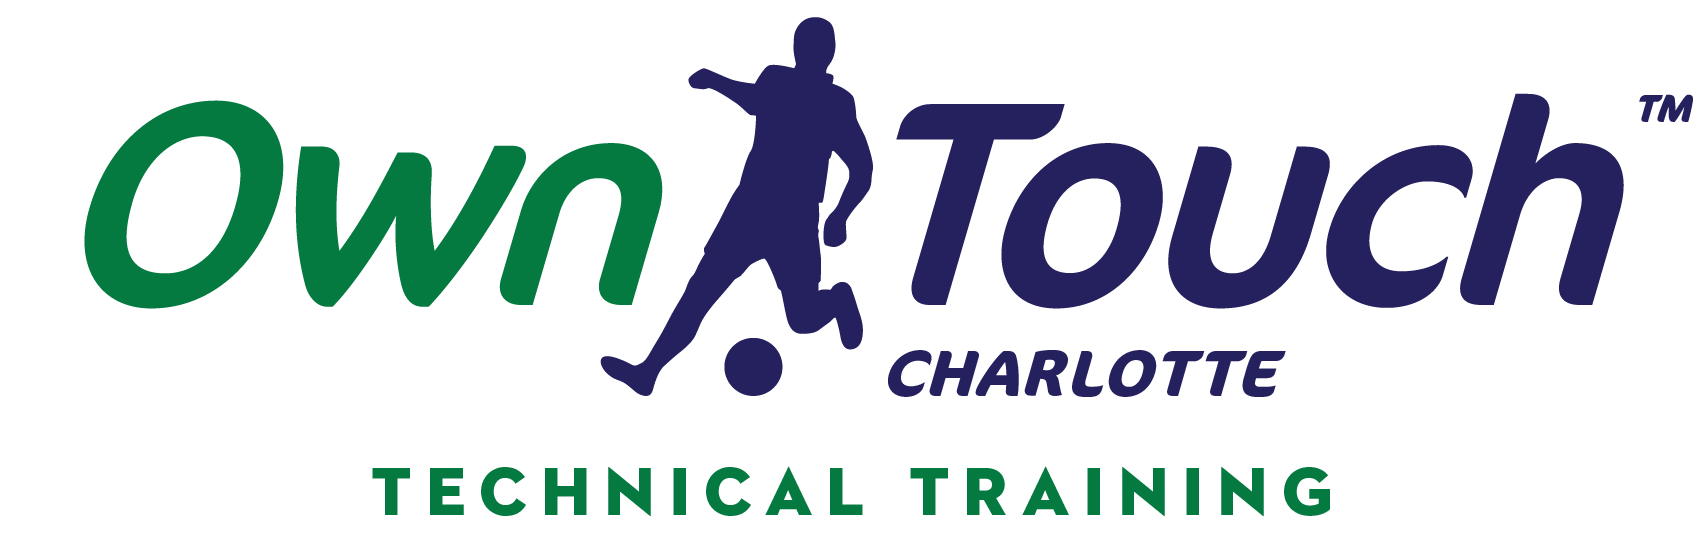 OT_LOGO_CLT_EVERYTHING.png